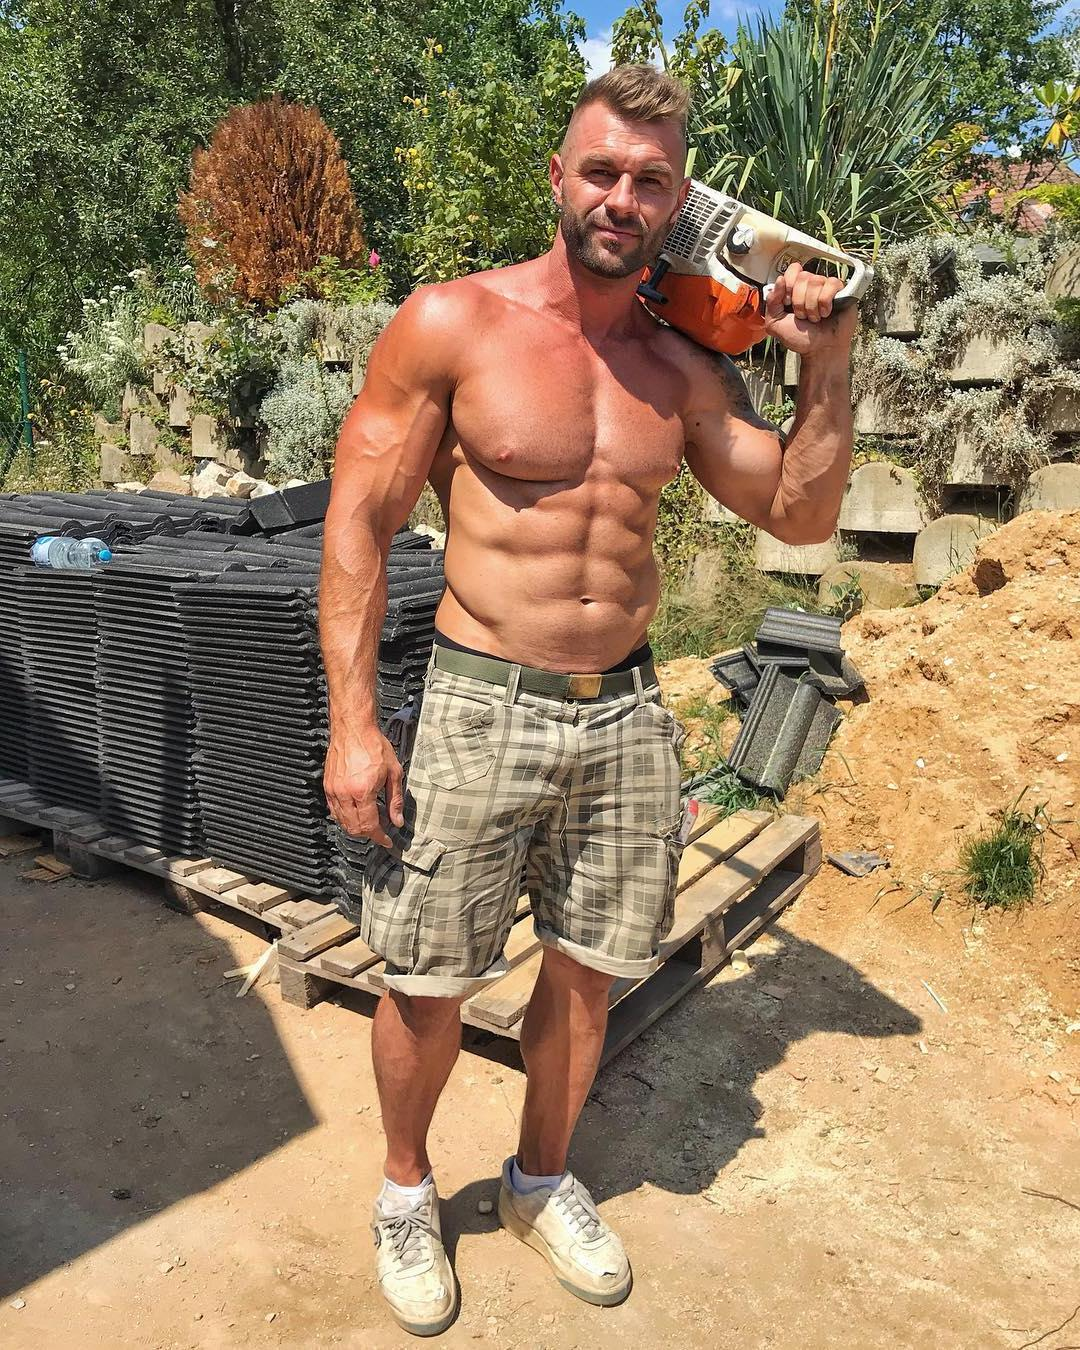 sexiest-construction-workers-shirtless-muscle-daddies-with-sixpack-abs-pecs-sweaty-fit-bodies